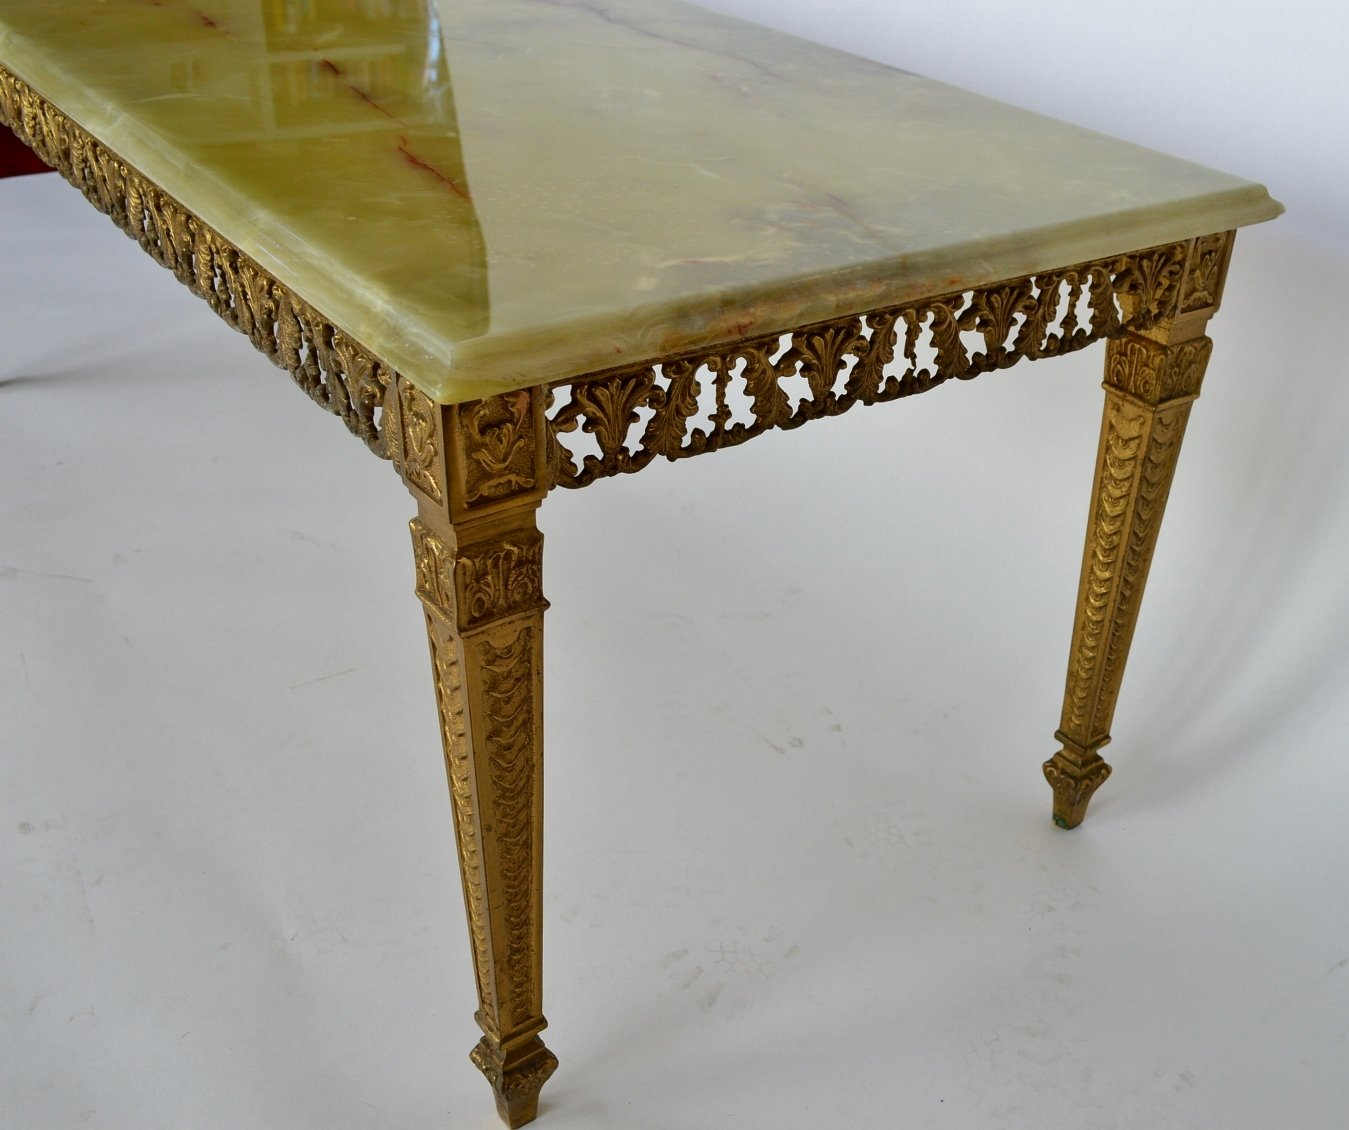 Marble Coffee Table Ireland: Green Onyx Marble & Brass Coffee Table, 1970s For Sale At